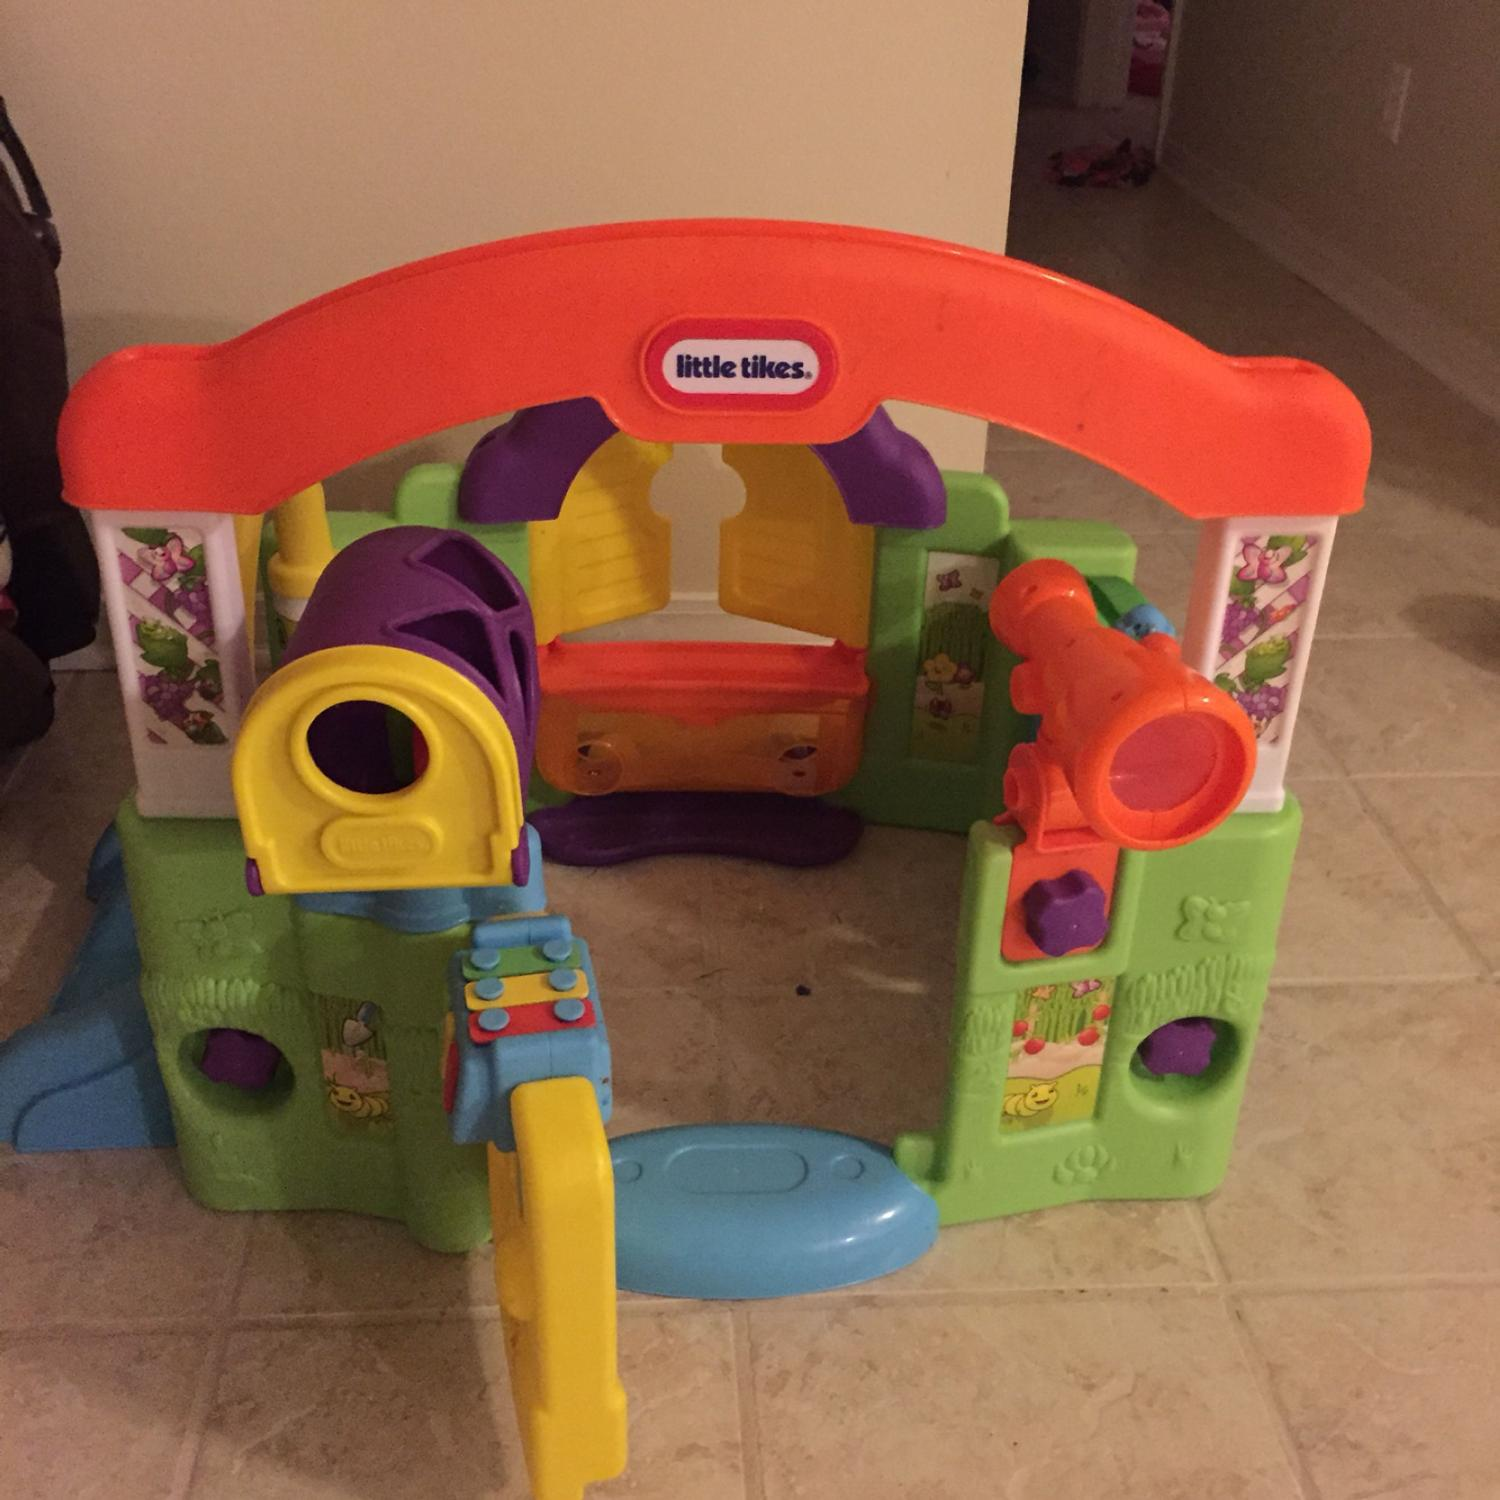 Find more Little Tikes Garden Activity Center for sale at up to 90% off